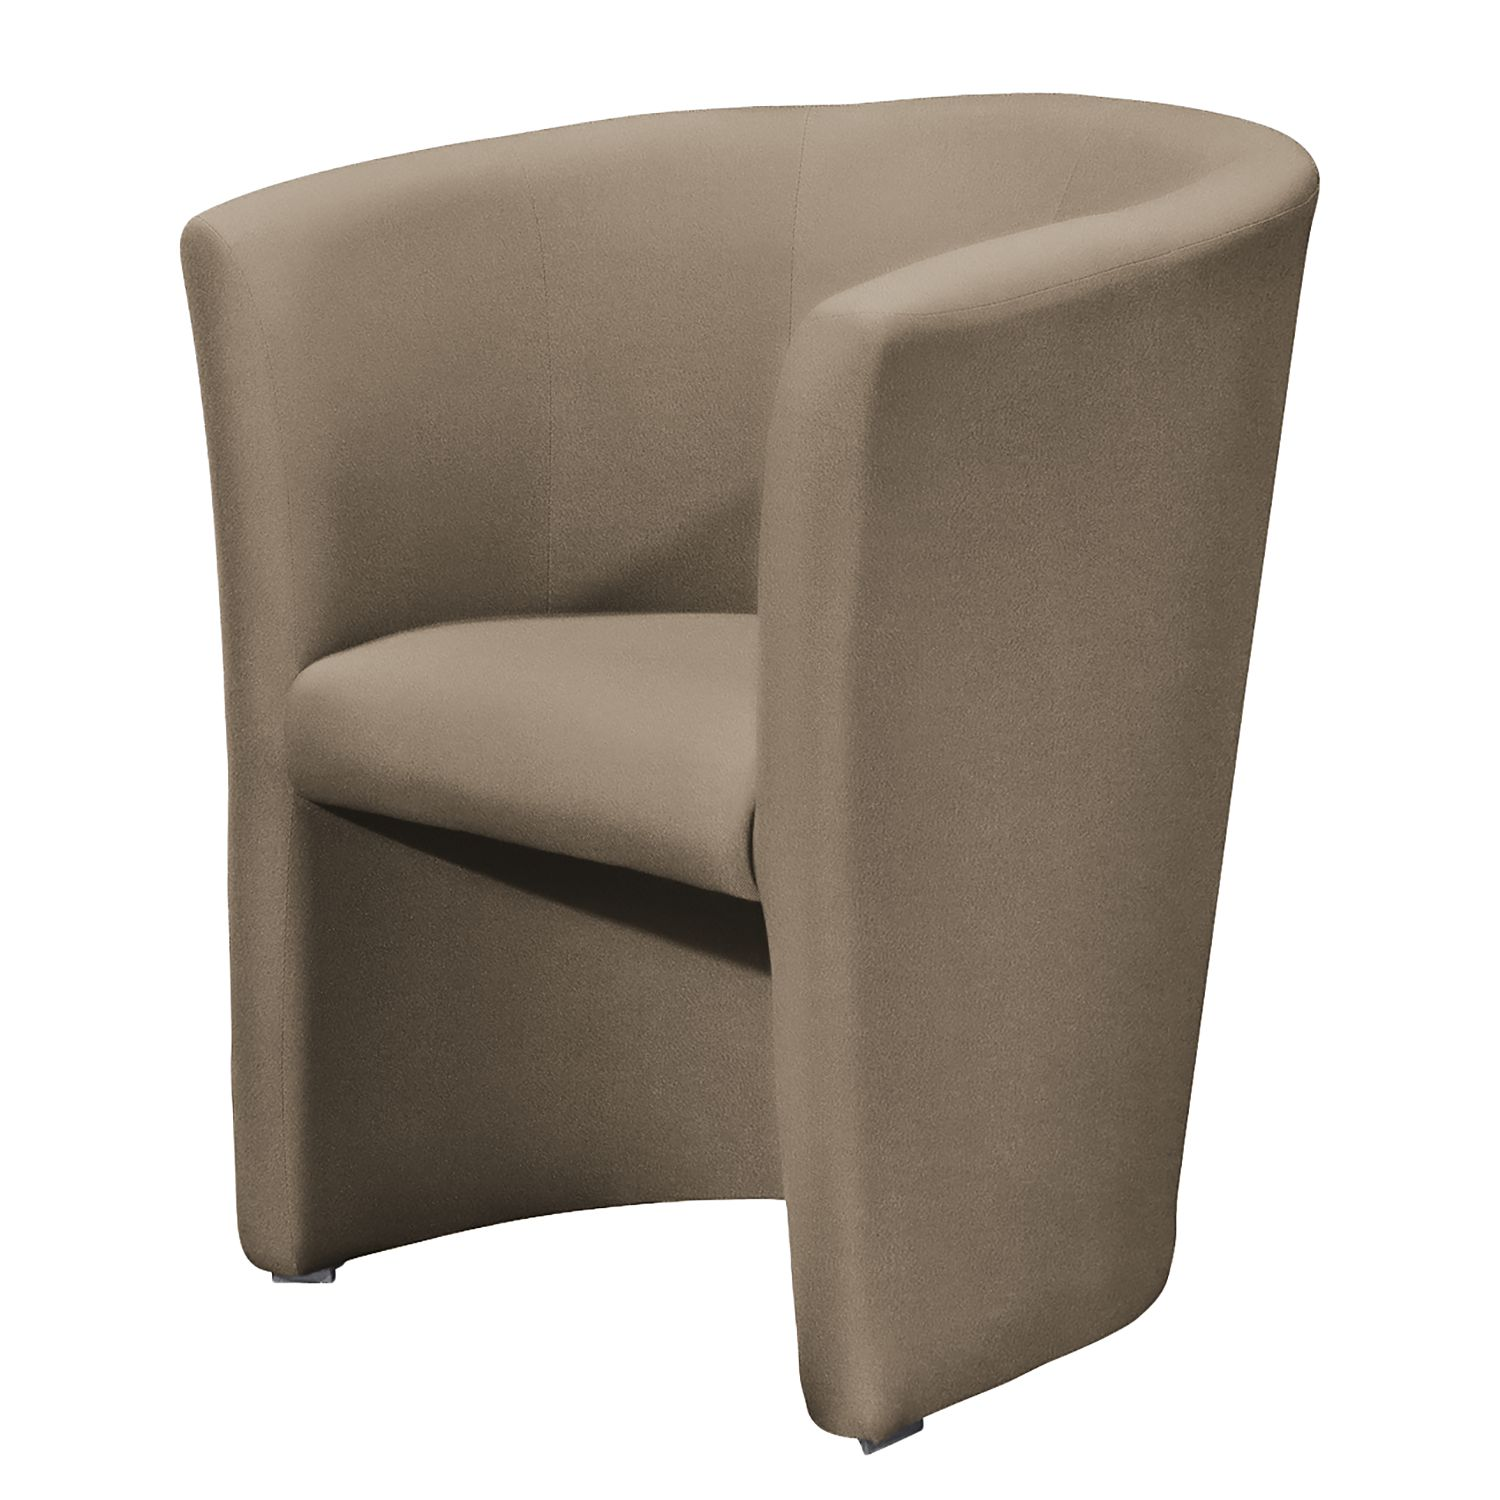 Fauteuil Sinclair - Microfibre - Taupe, mooved